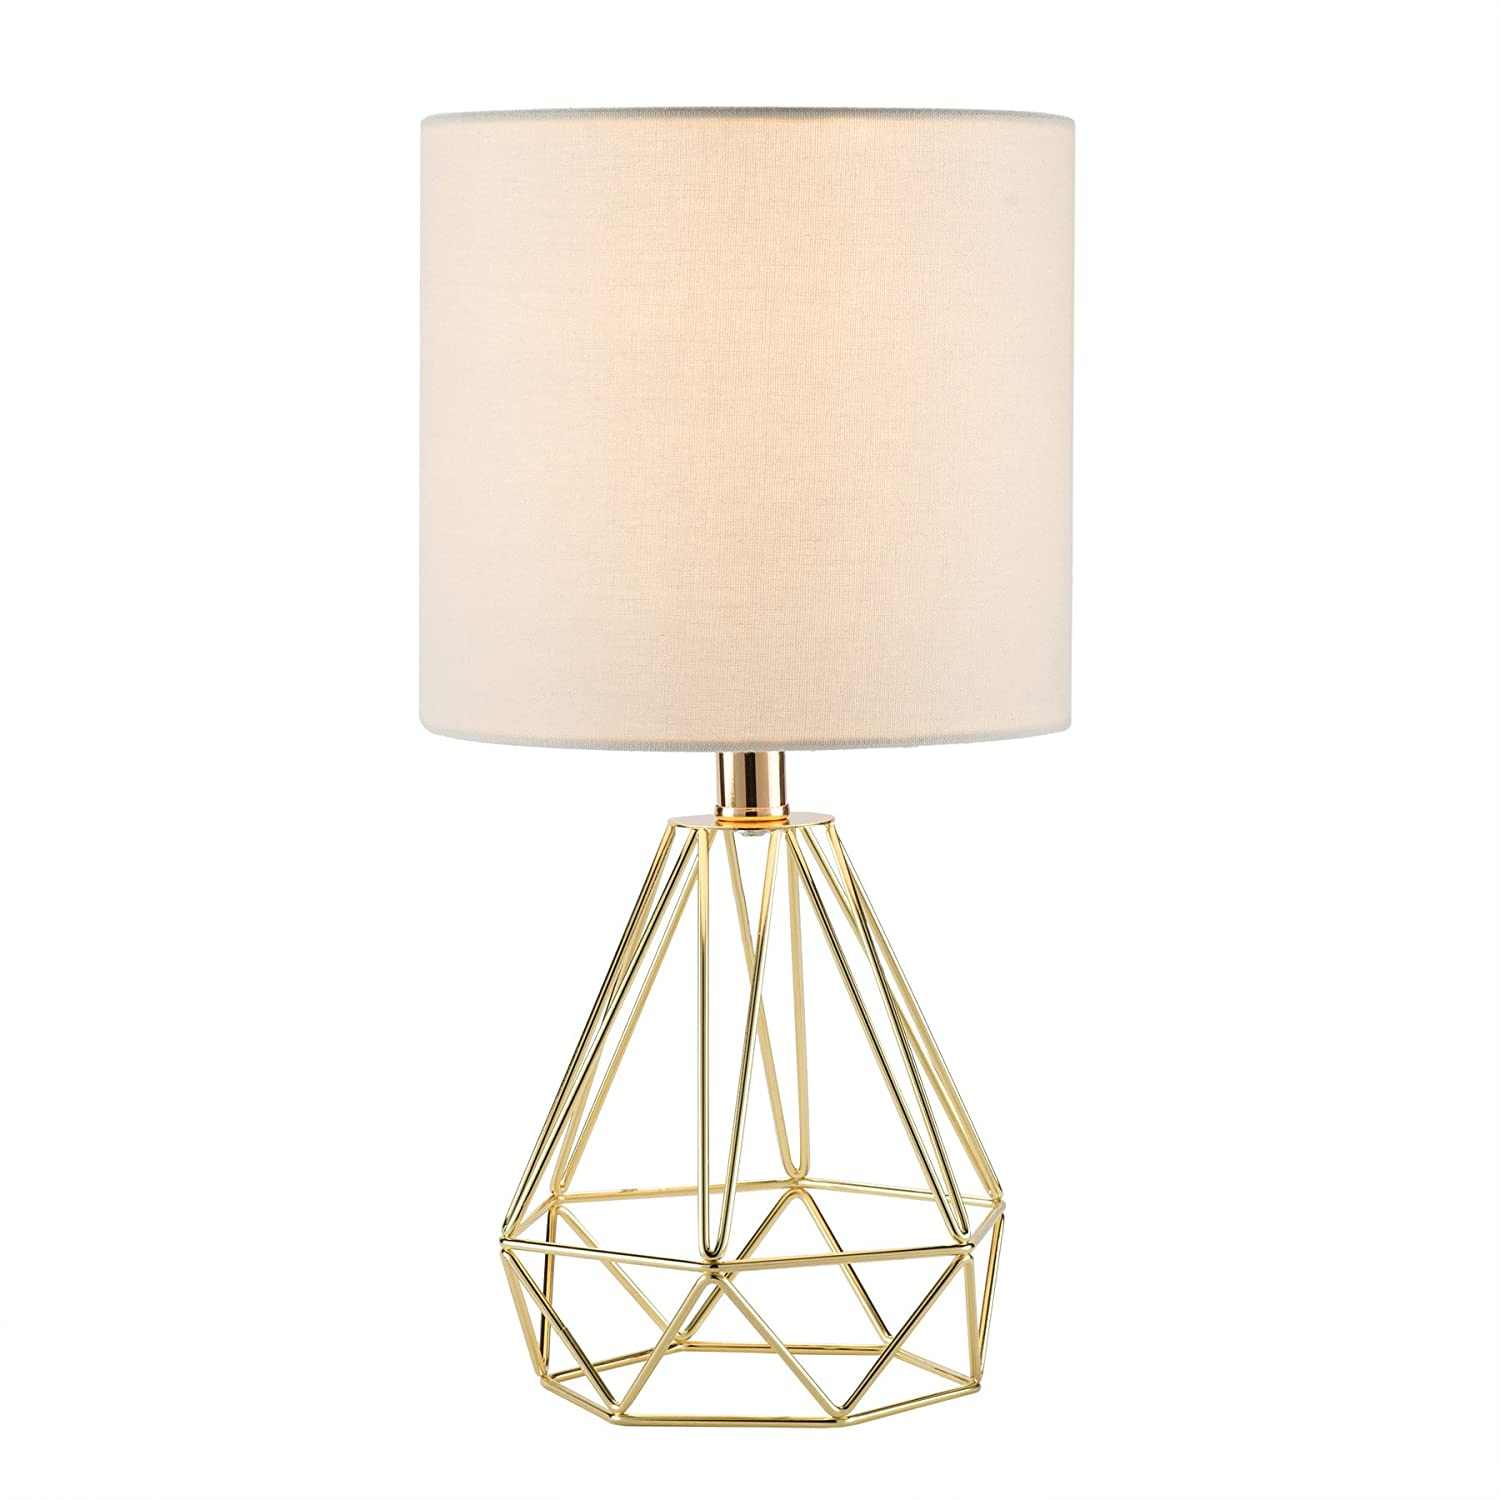 CO-Z Modern Table Lamp with White Fabric Shade, Gold Desk Lamp with Hollowed Out Base 18 Inches in Height for Living Room Bedroom Dining Room(Gold Base)